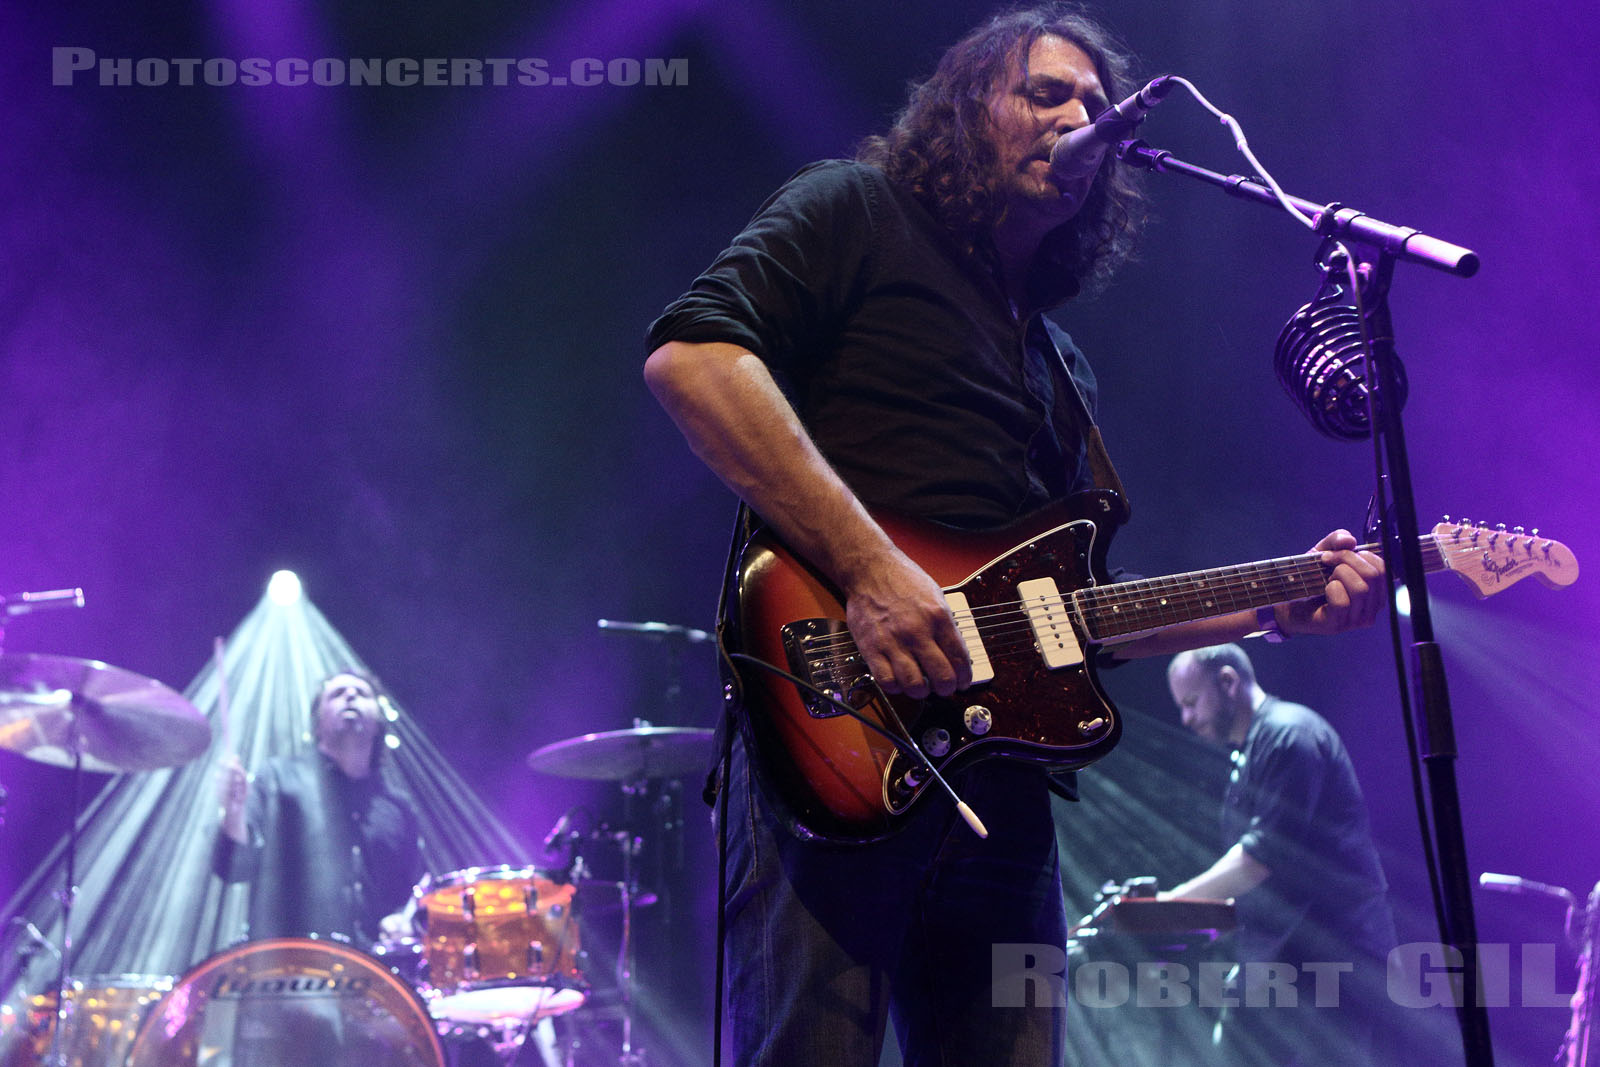 THE WAR ON DRUGS - 2015-07-06 - PARIS - Philharmonie de Paris 2